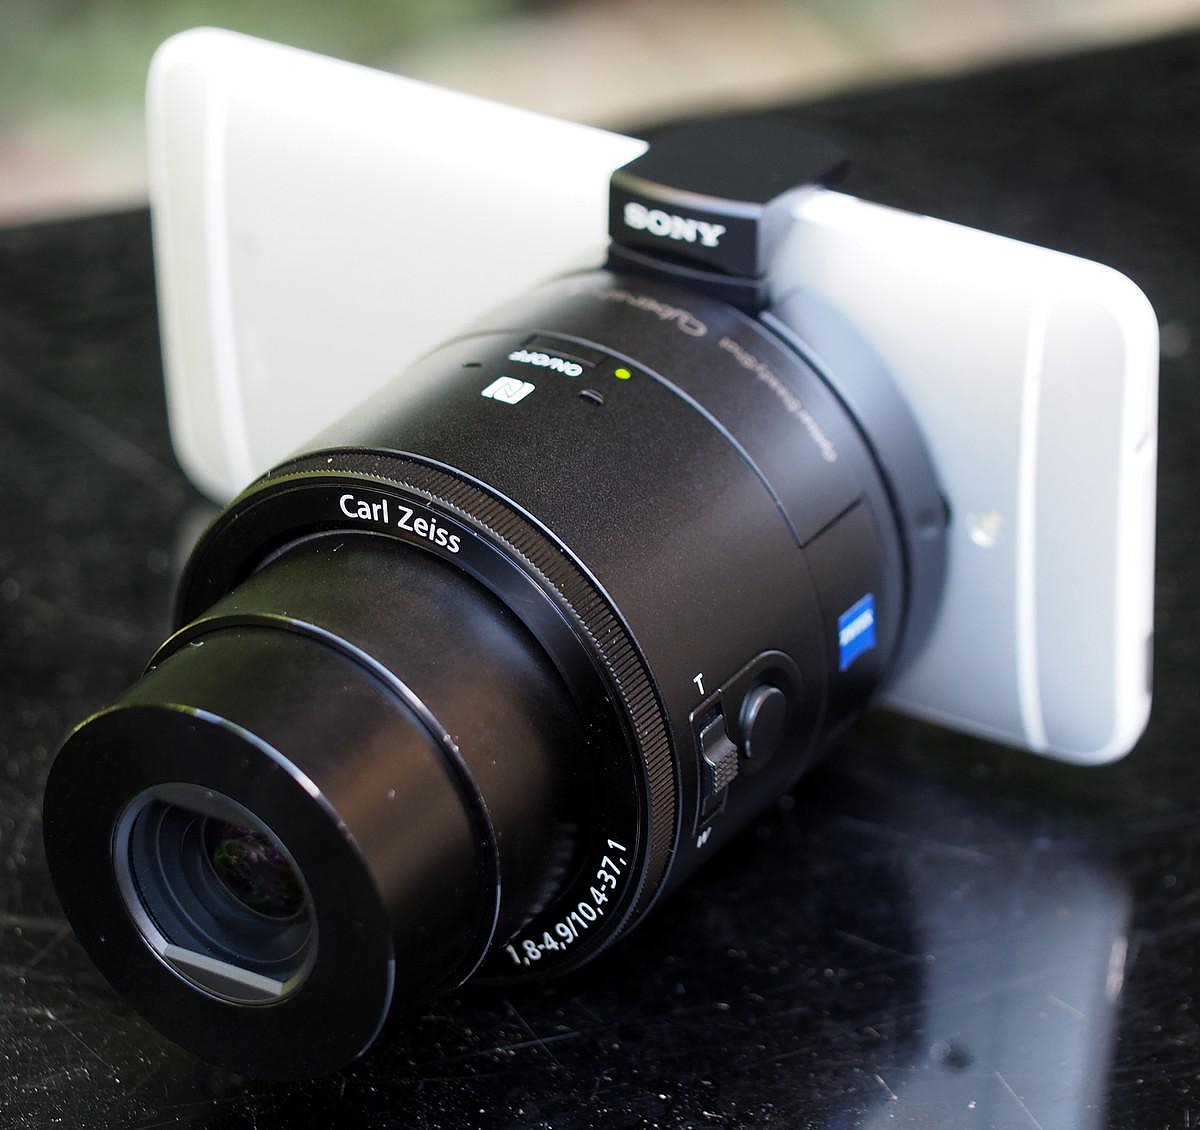 Sony QX10 & QX100 Detachable Lens Cameras for Smartphones.